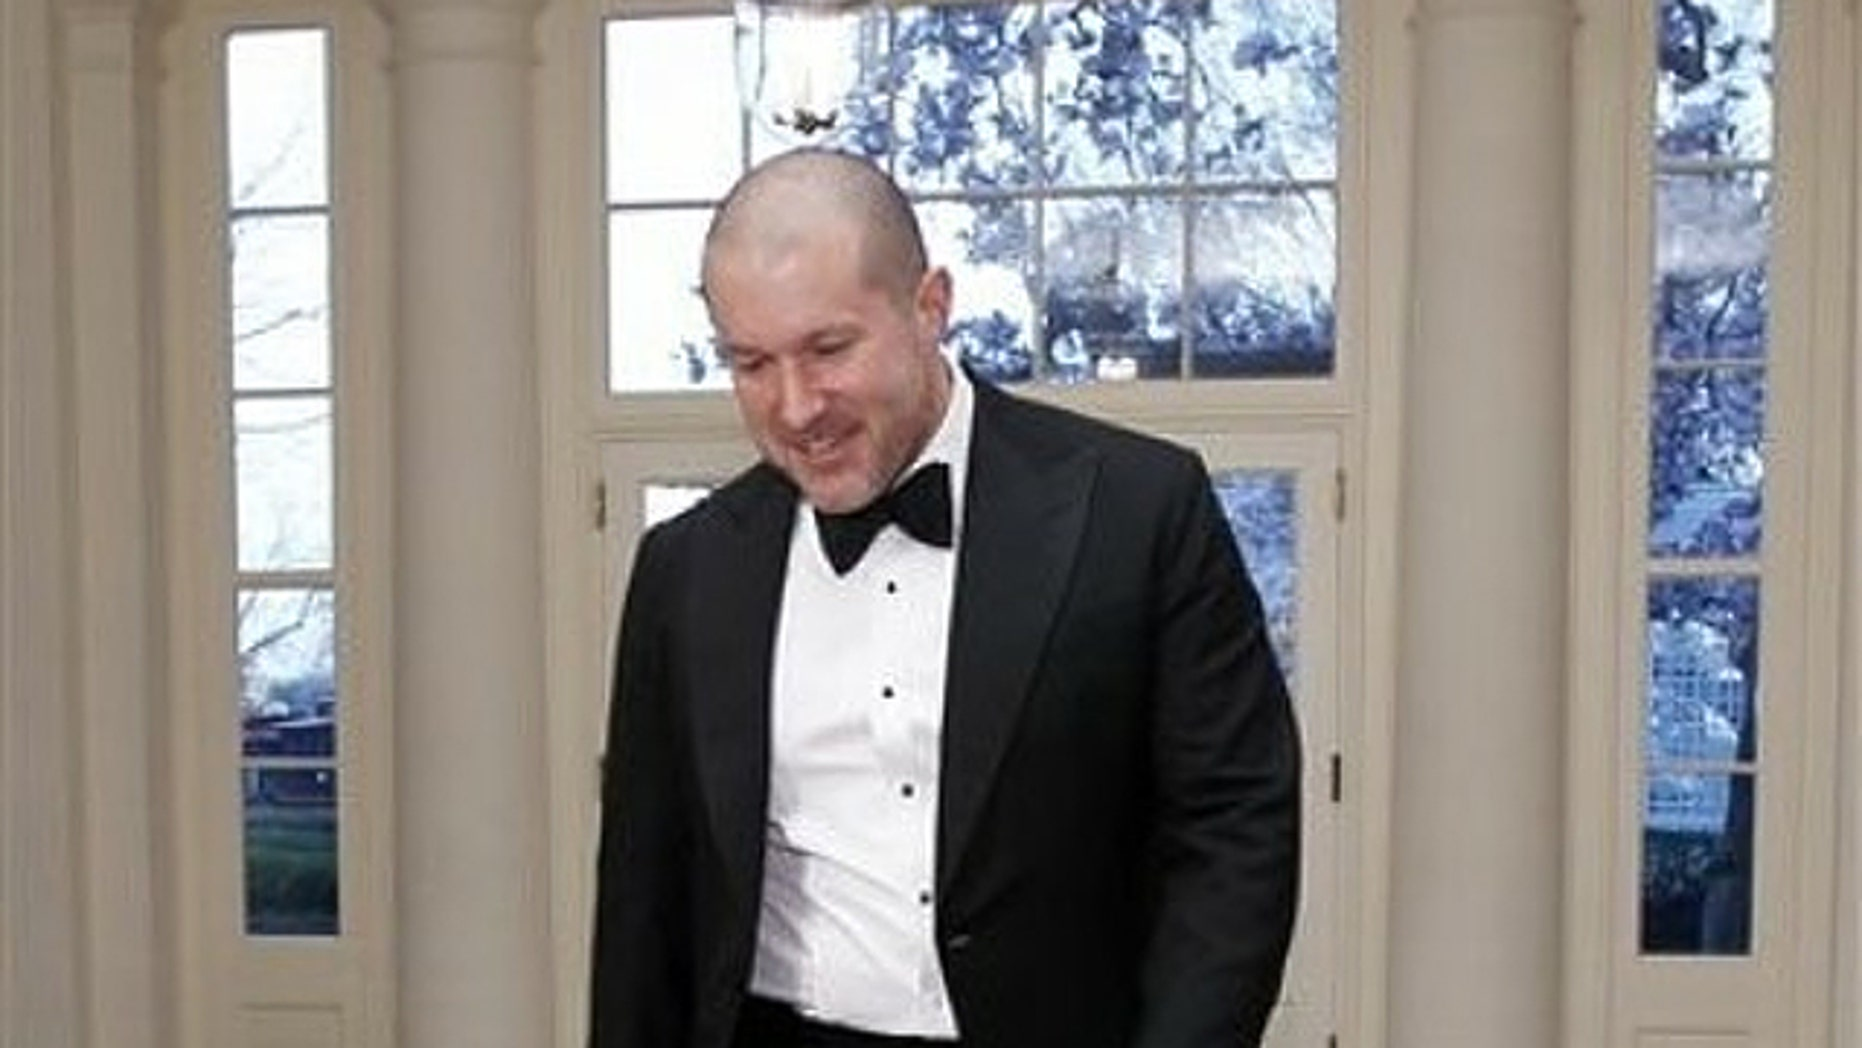 British designer and senior vice president of industrial design at Apple Jonathan Ive becomes a Knight Commander of the British Empire.